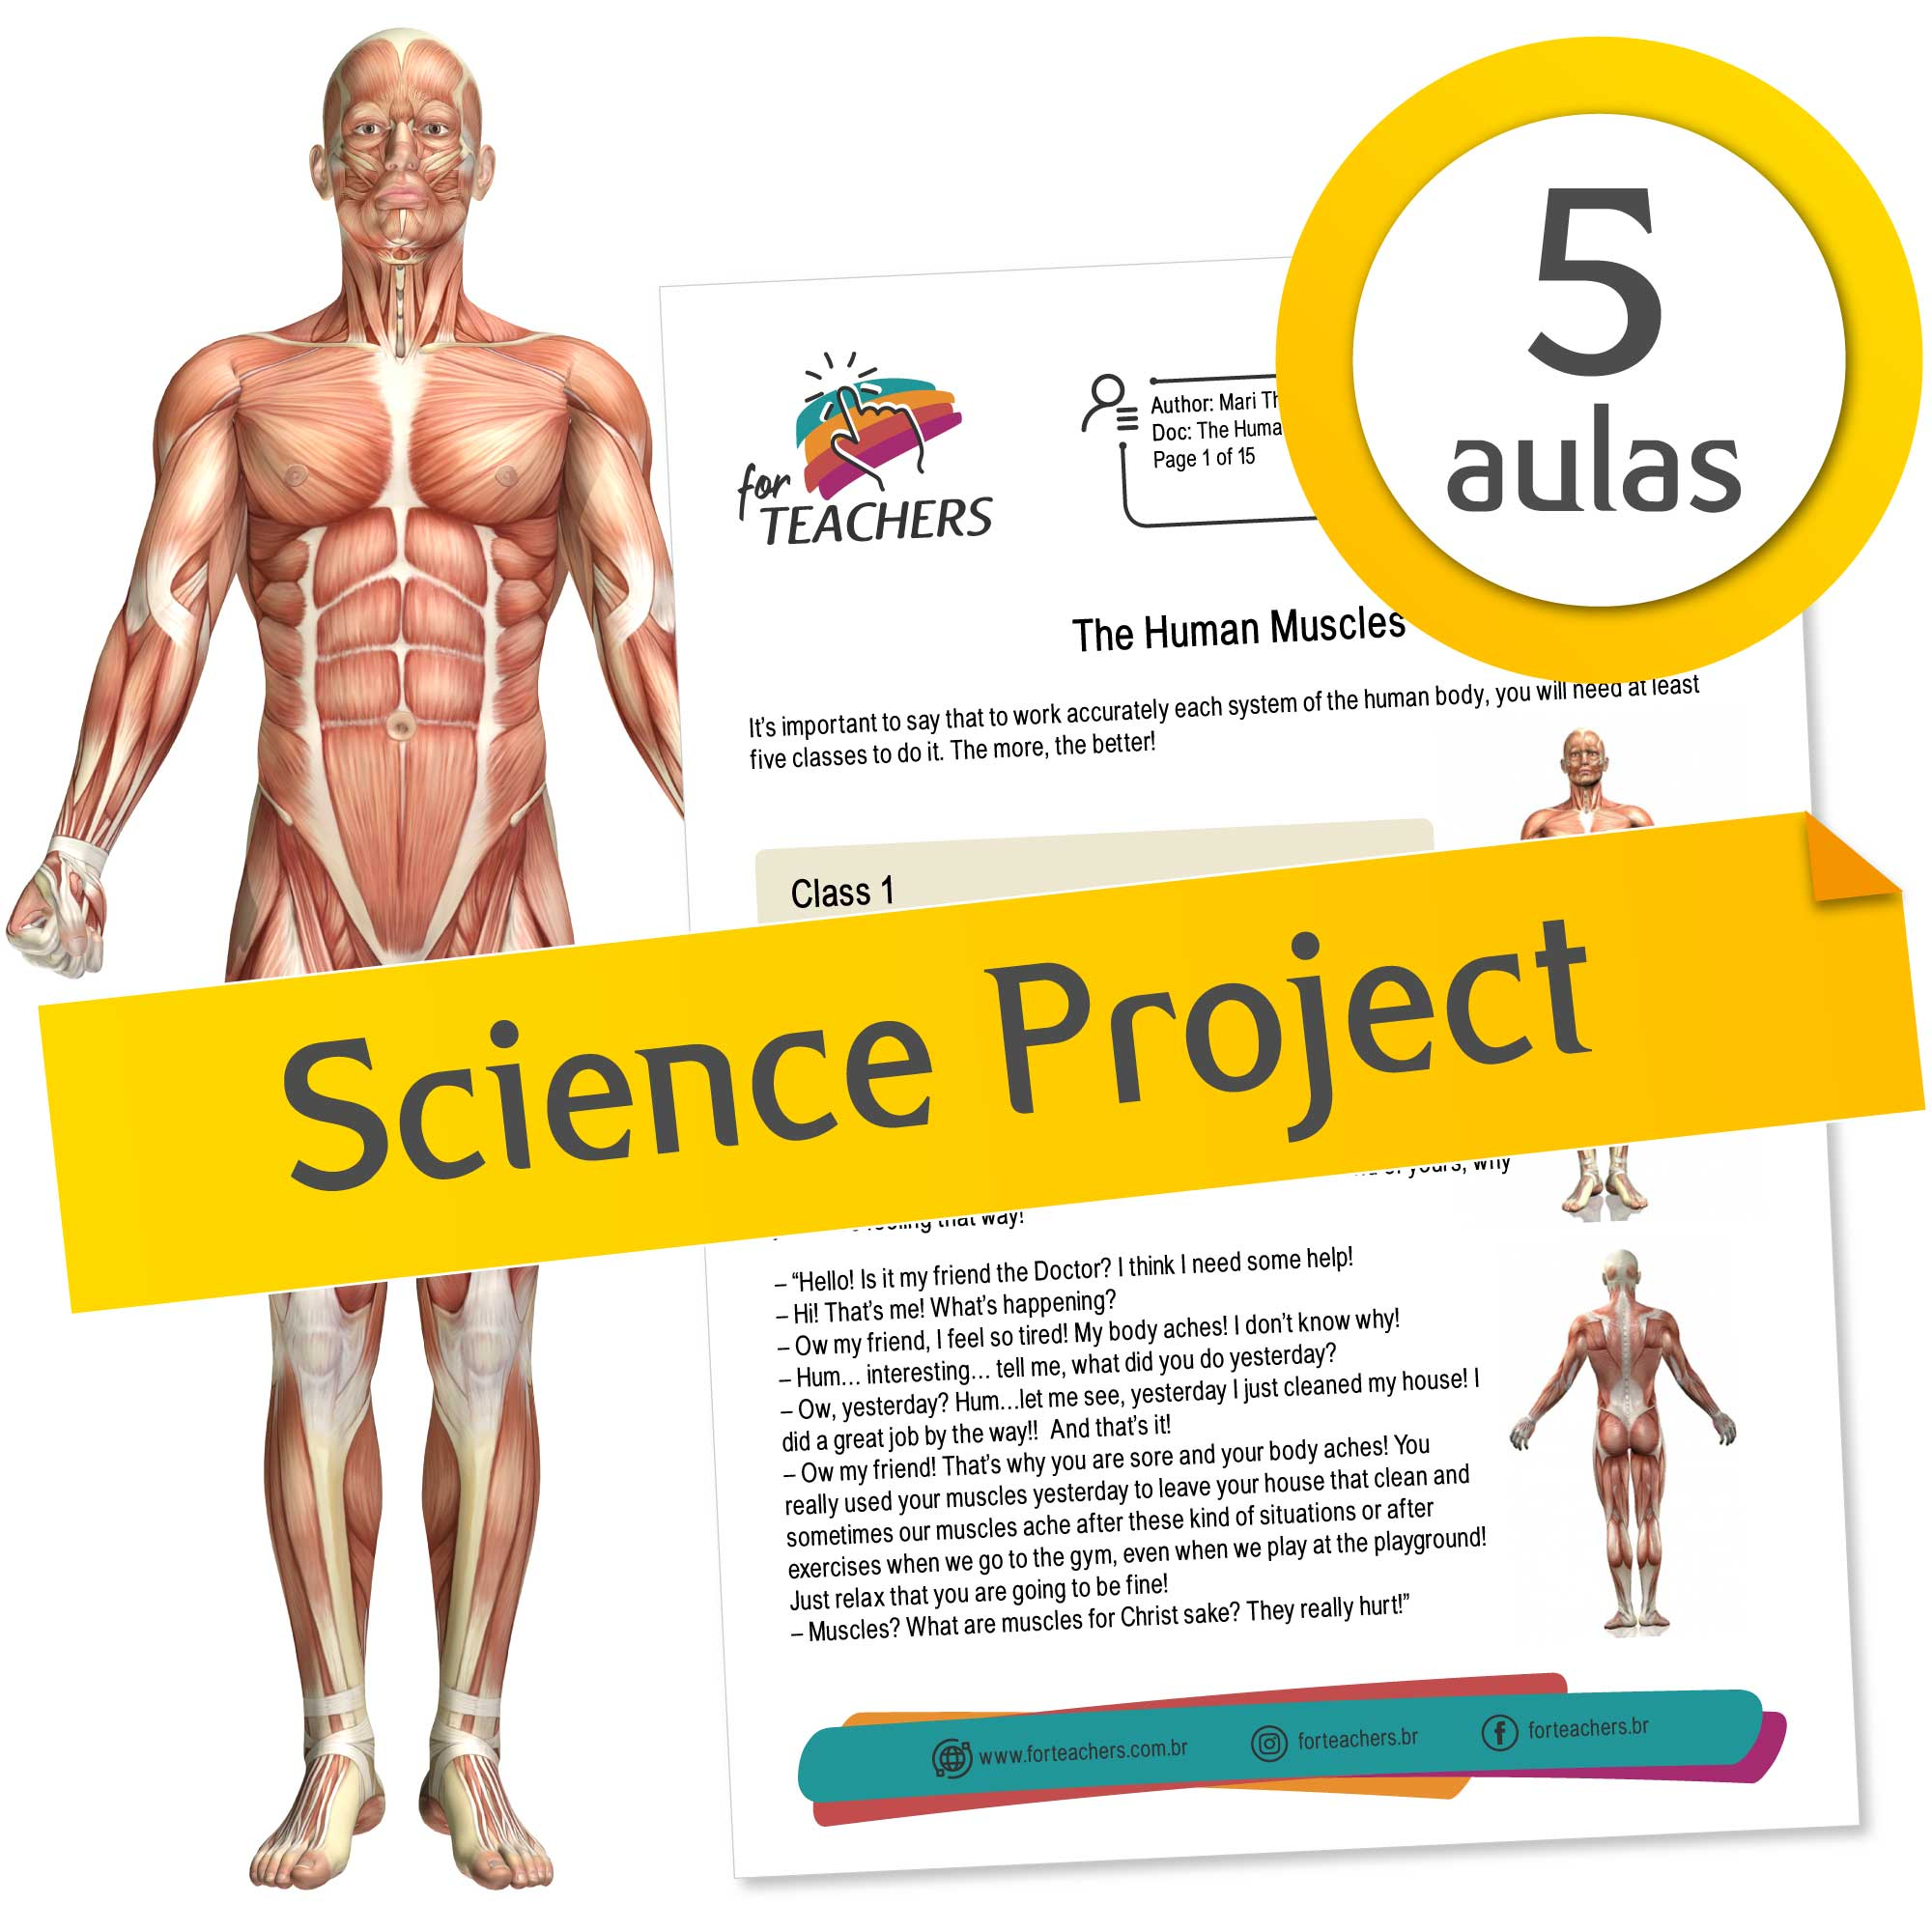 The Human Muscles